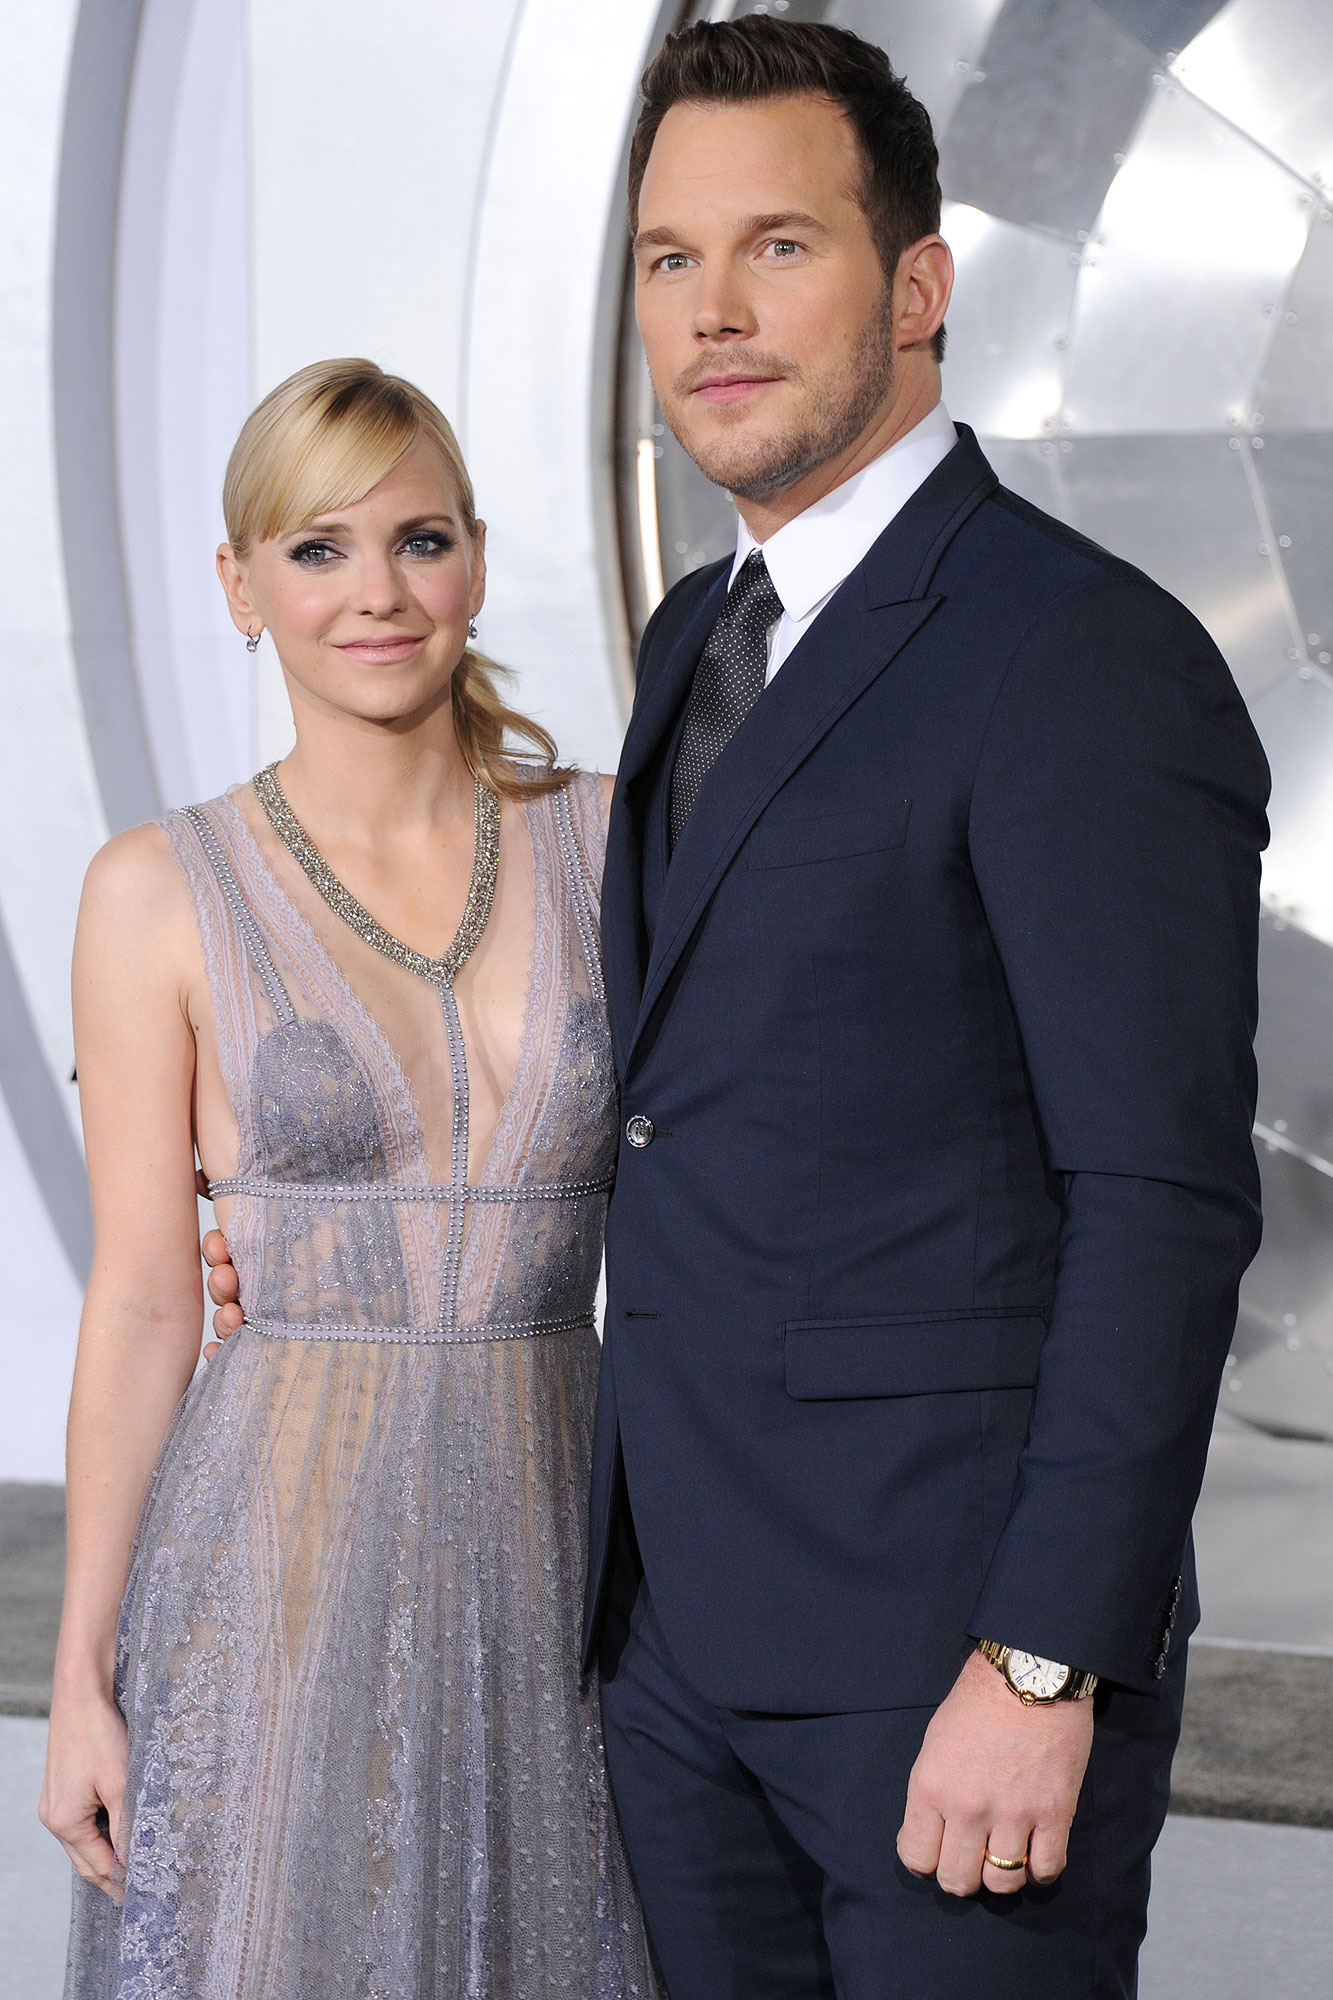 """Anna Faris and Chris Pratt arrive at the premiere of Columbia Pictures' """"Passengers"""" at Regency Village Theatre on December 14, 2016 in Westwood, California."""